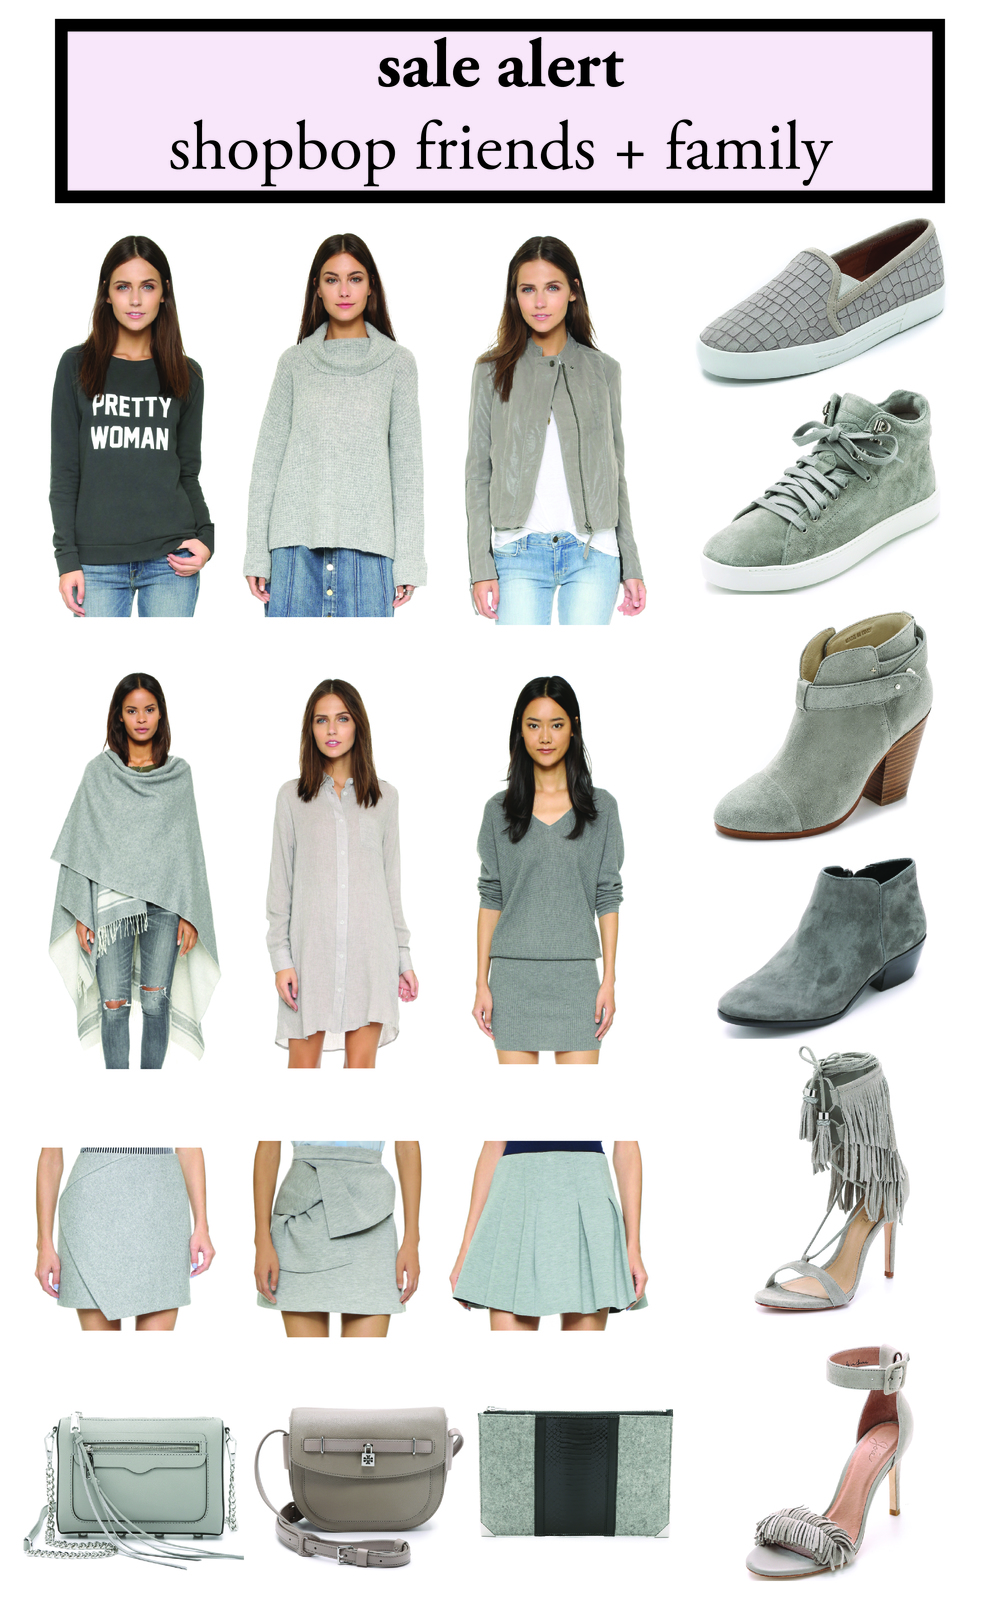 SHOPBOP fall ff sale gray-01.jpg